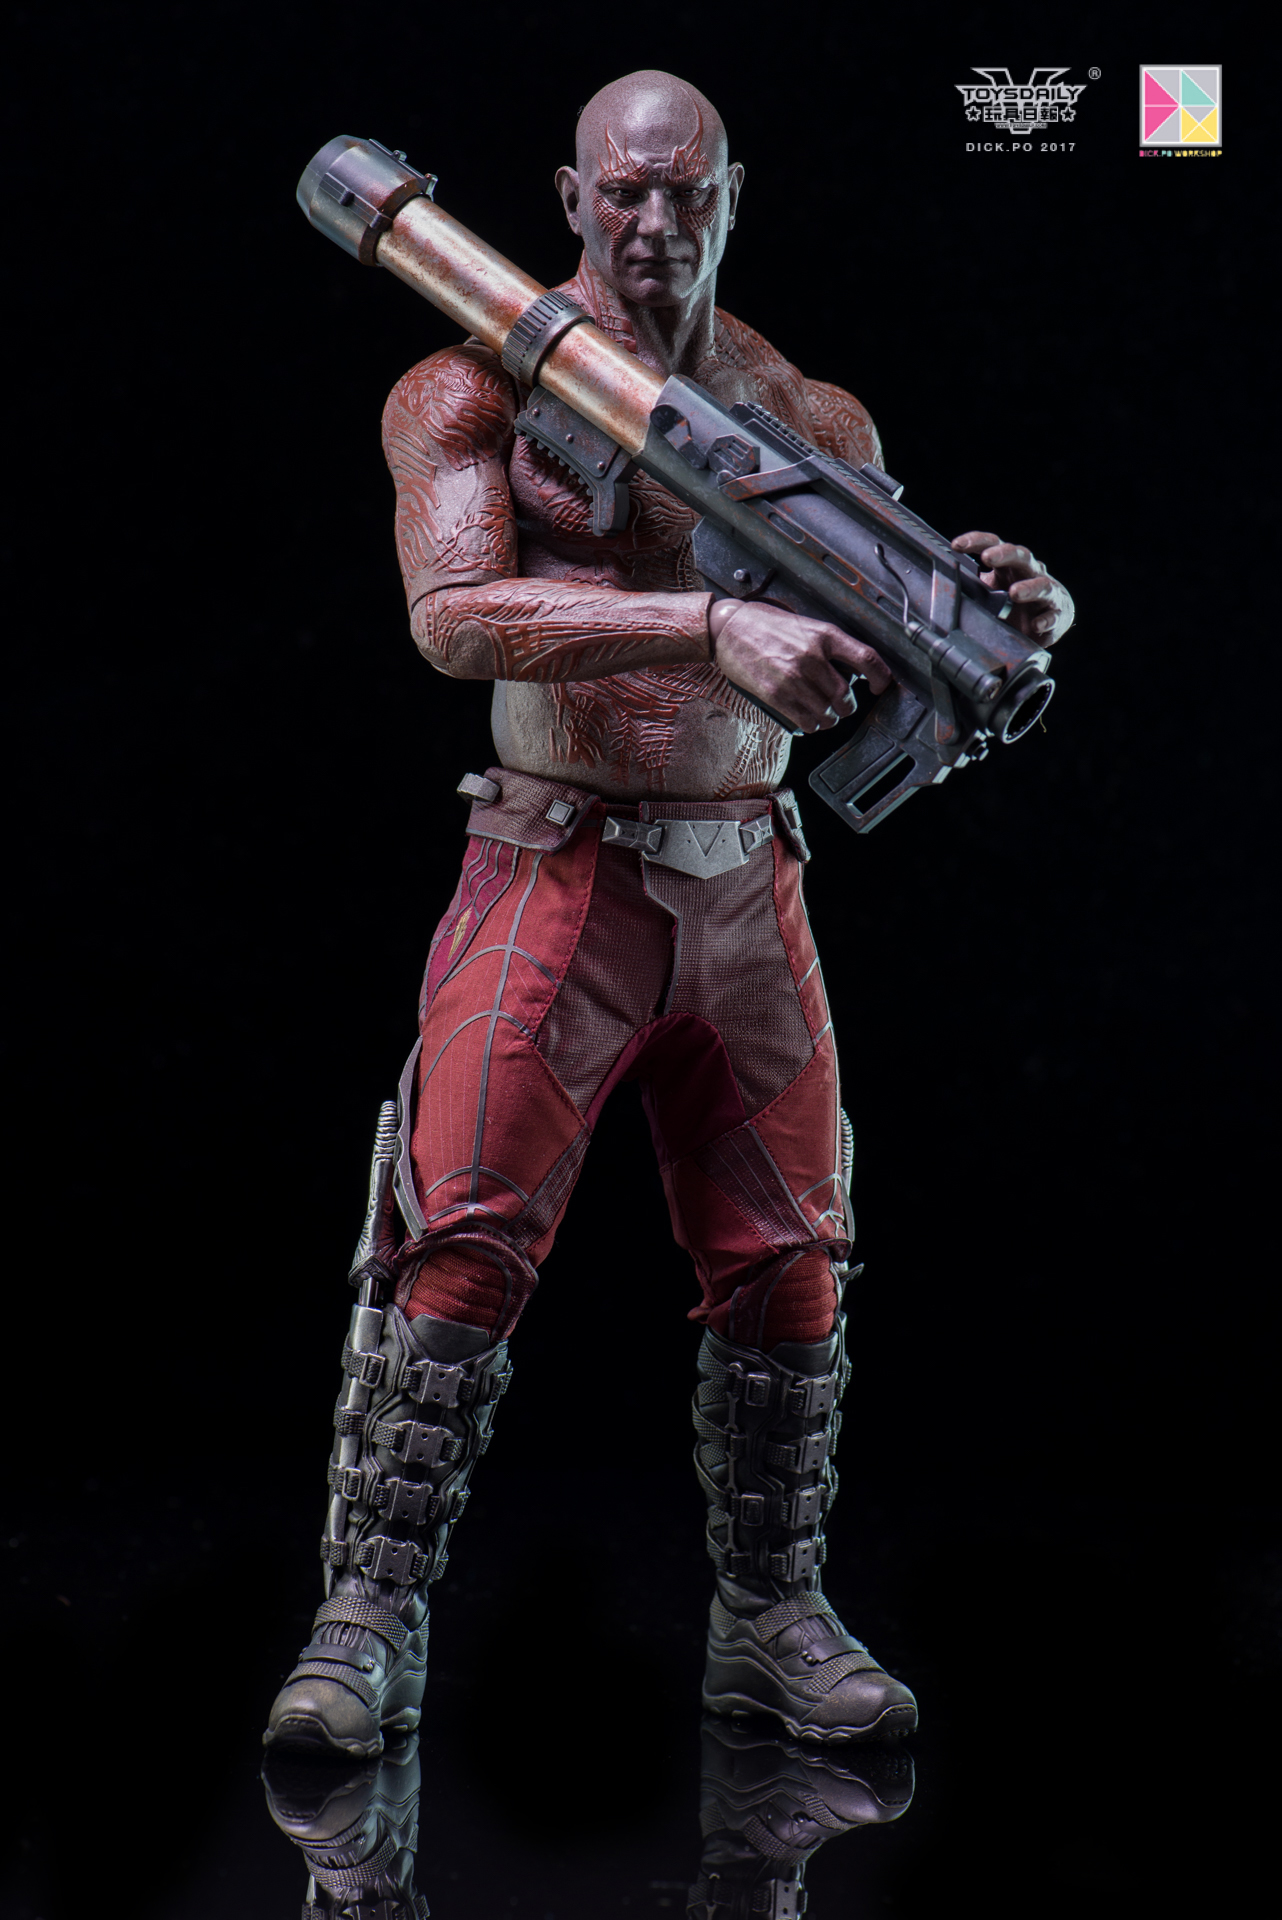 toysdaily_dick.po_Hottoys_DARX-43.jpg